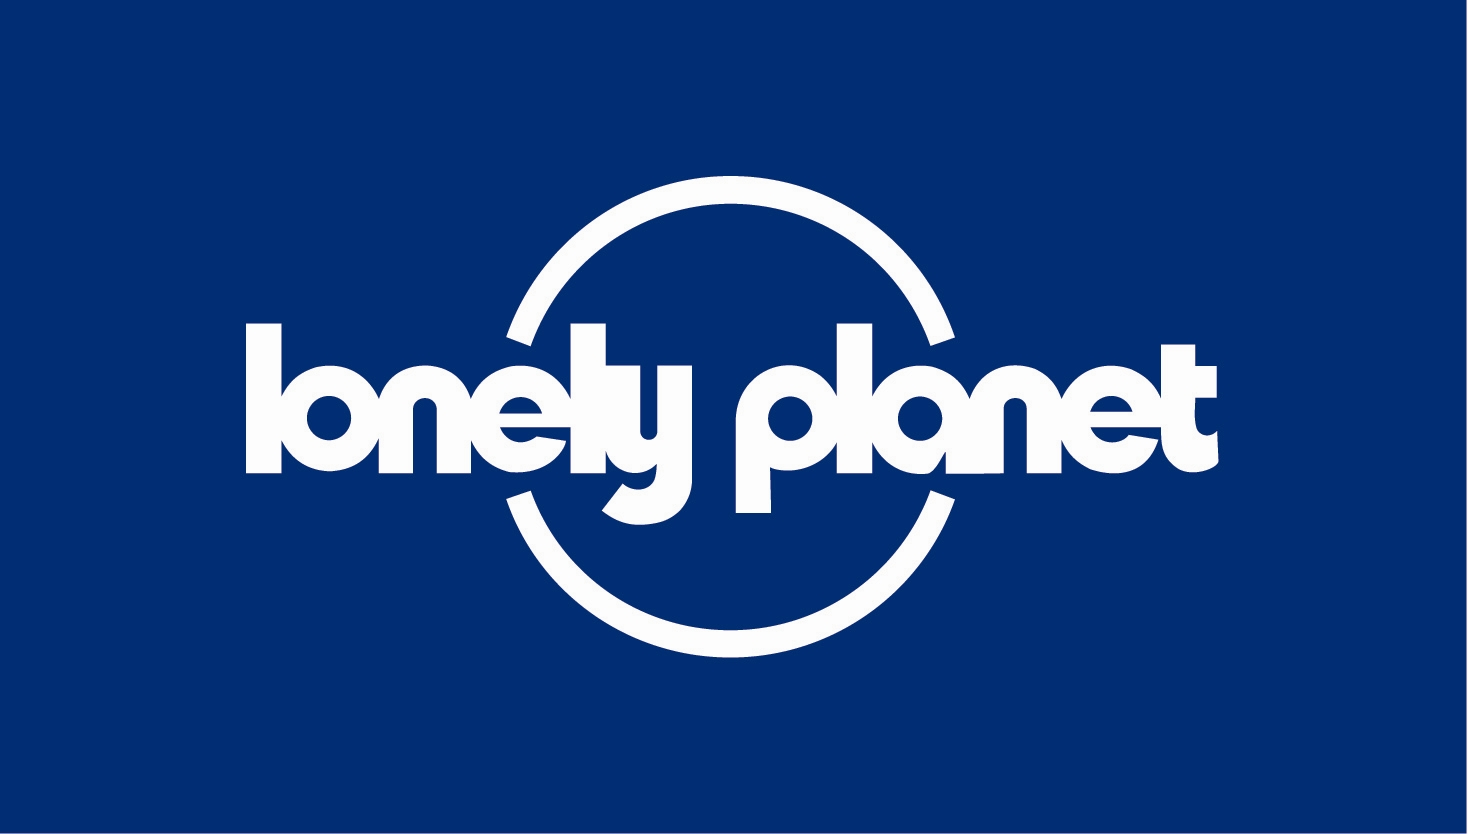 PROMO: 45% off everything at Lonely Planet